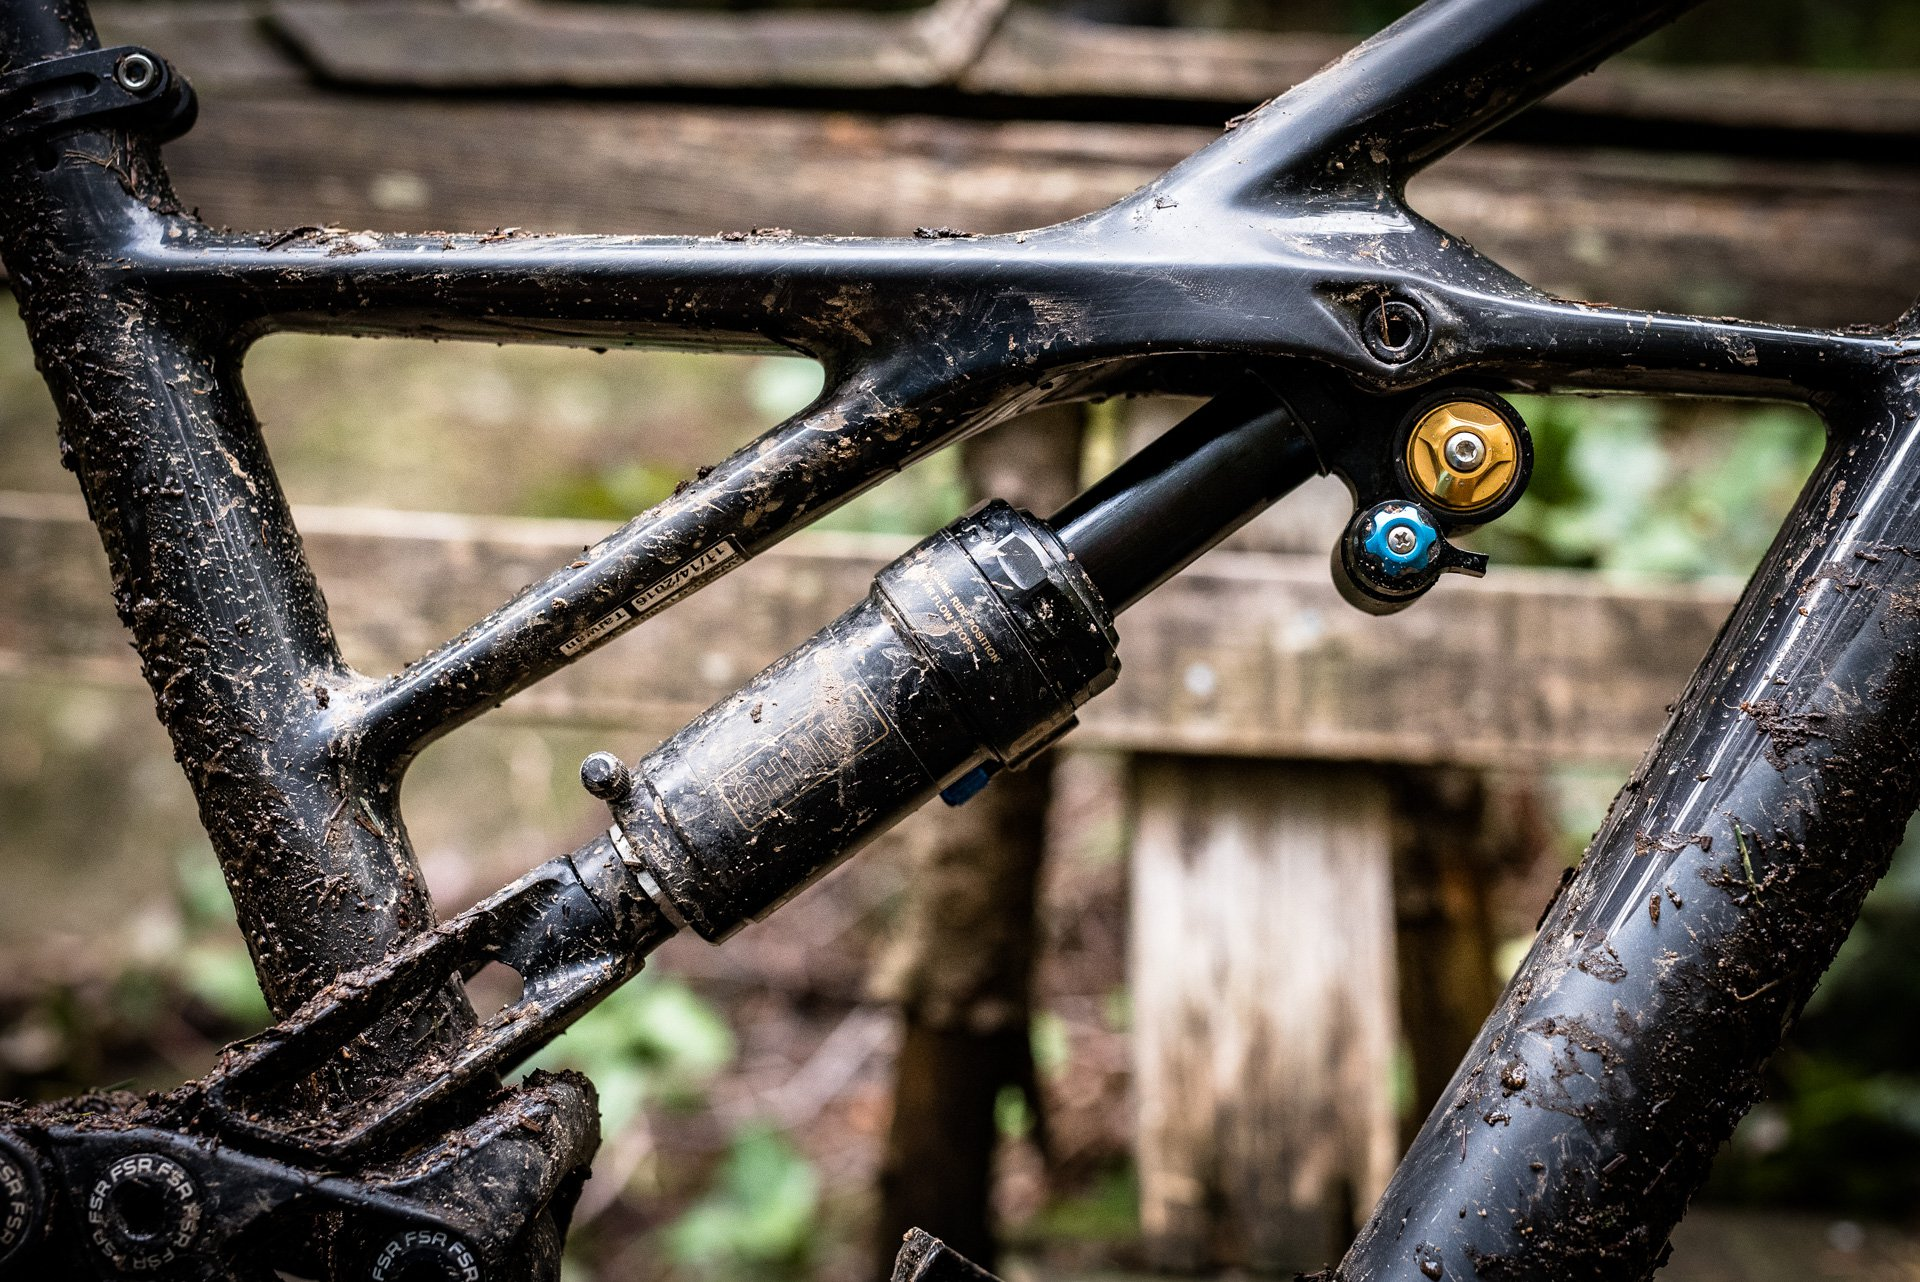 nsmb_2017_geareview_specialized_enduro29_PerrySchebel-7879.jpg